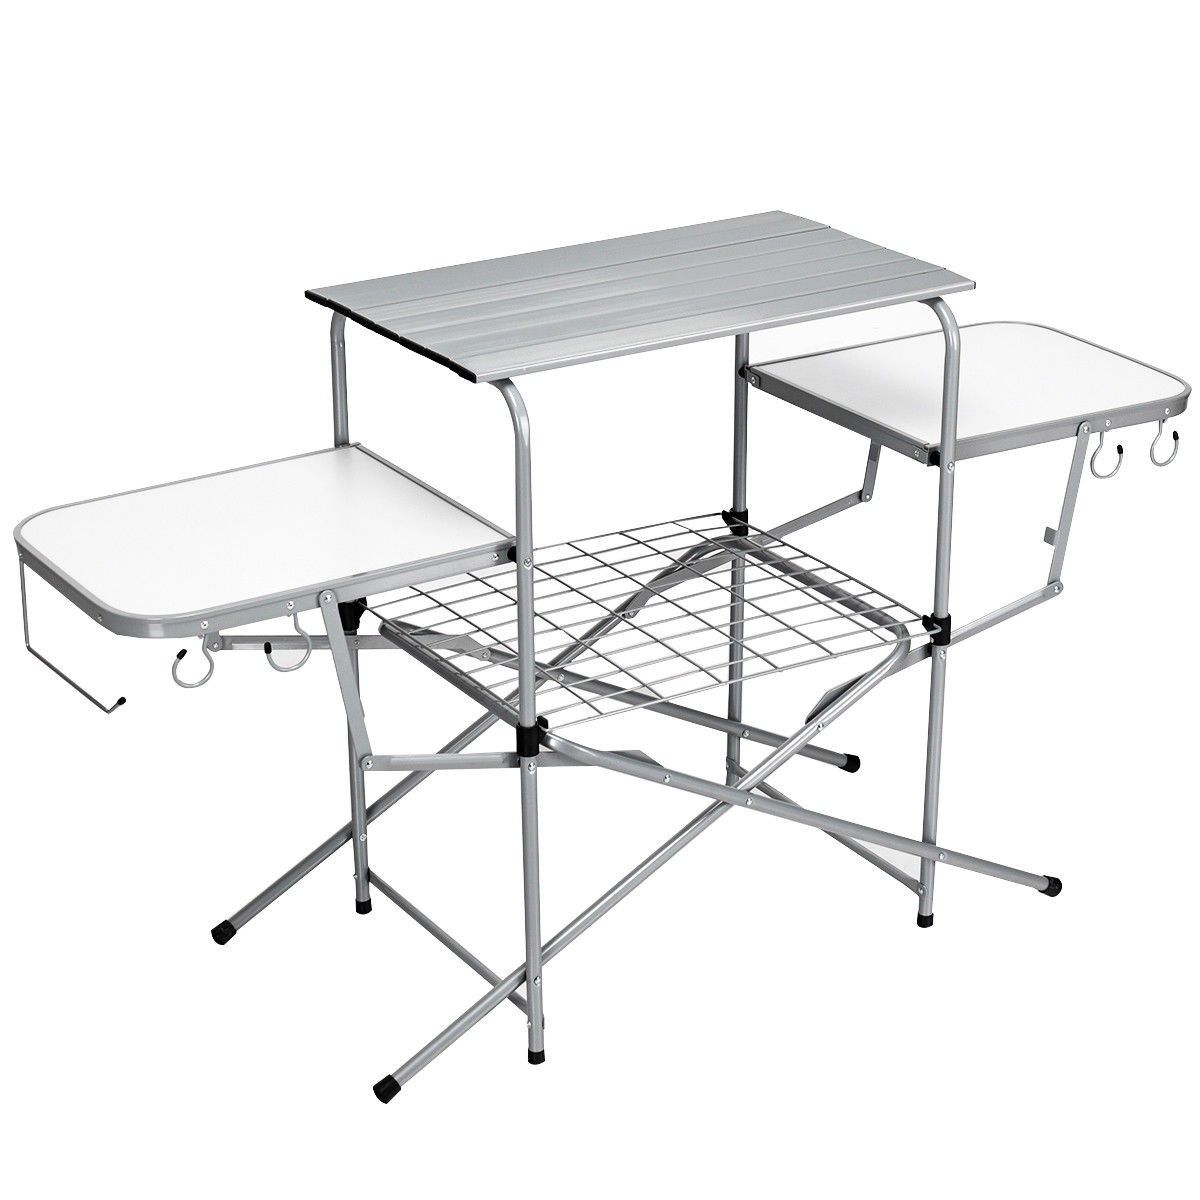 Foldable Outdoor Bbq Table Grilling Stand Camping Table Bbq Table Folding Bbq